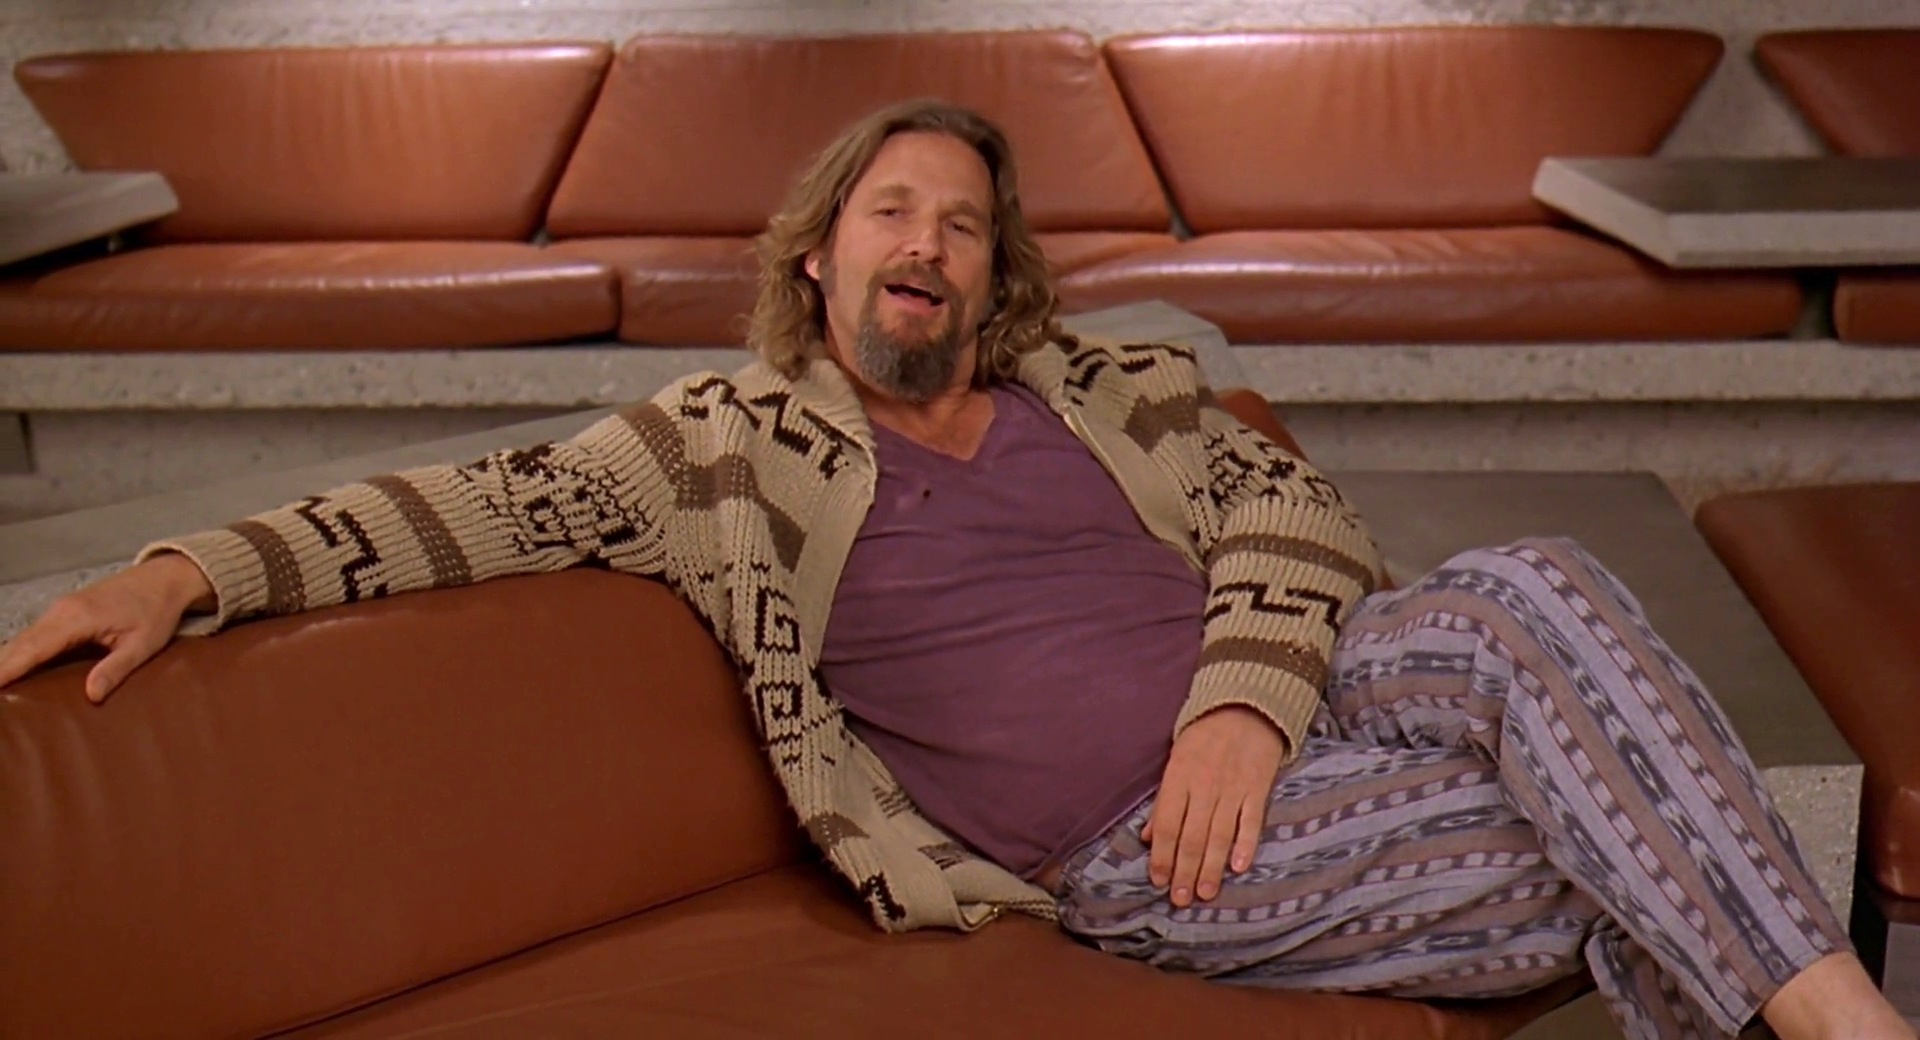 film the_big_lebowski 1998 the_dude jeff_bridges bottoms pj_pants - Good Halloween Costumes For Big Guys